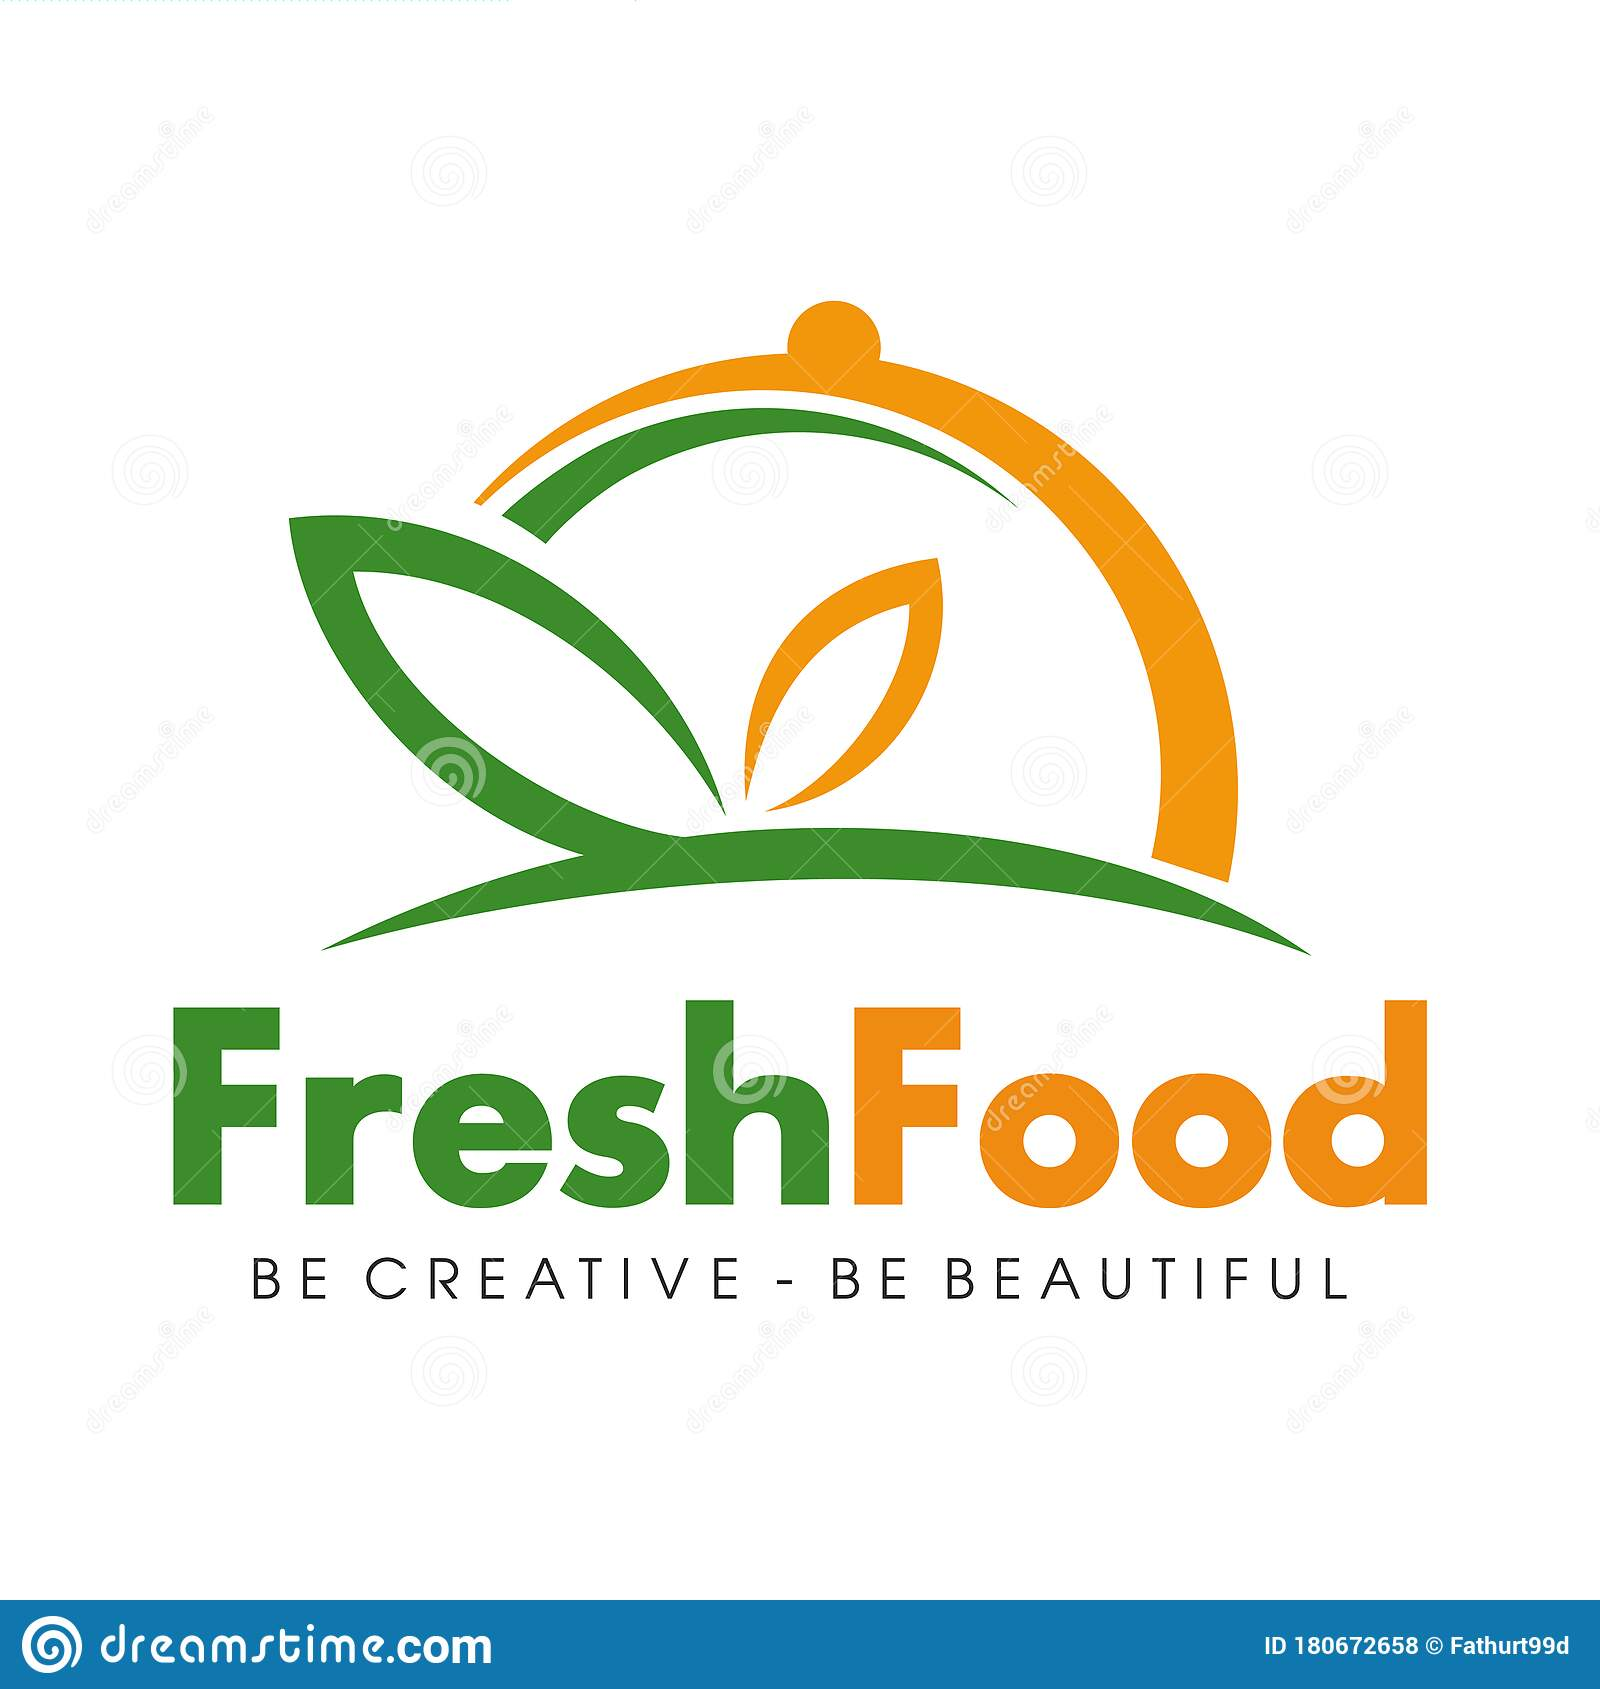 Food Delivery And Restaurant Logo Design Vector Stock Vector Illustration Of Eatery Healthy 180672658